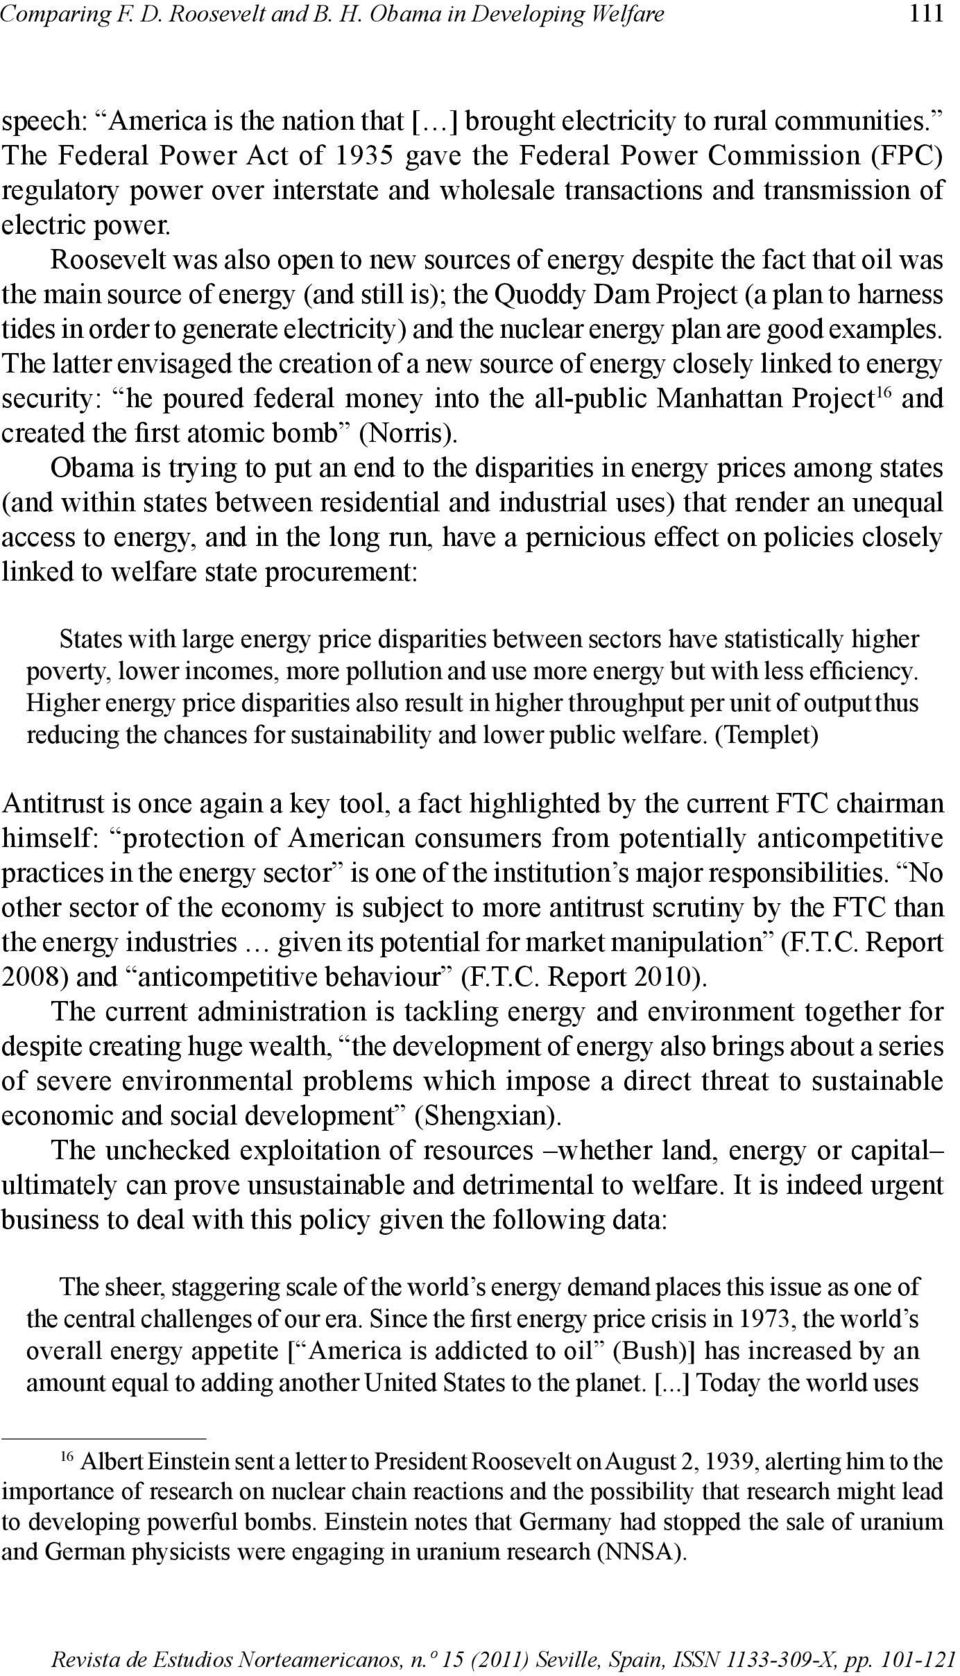 Roosevelt was also open to new sources of energy despite the fact that oil was the main source of energy (and still is); the Quoddy Dam Project (a plan to harness tides in order to generate